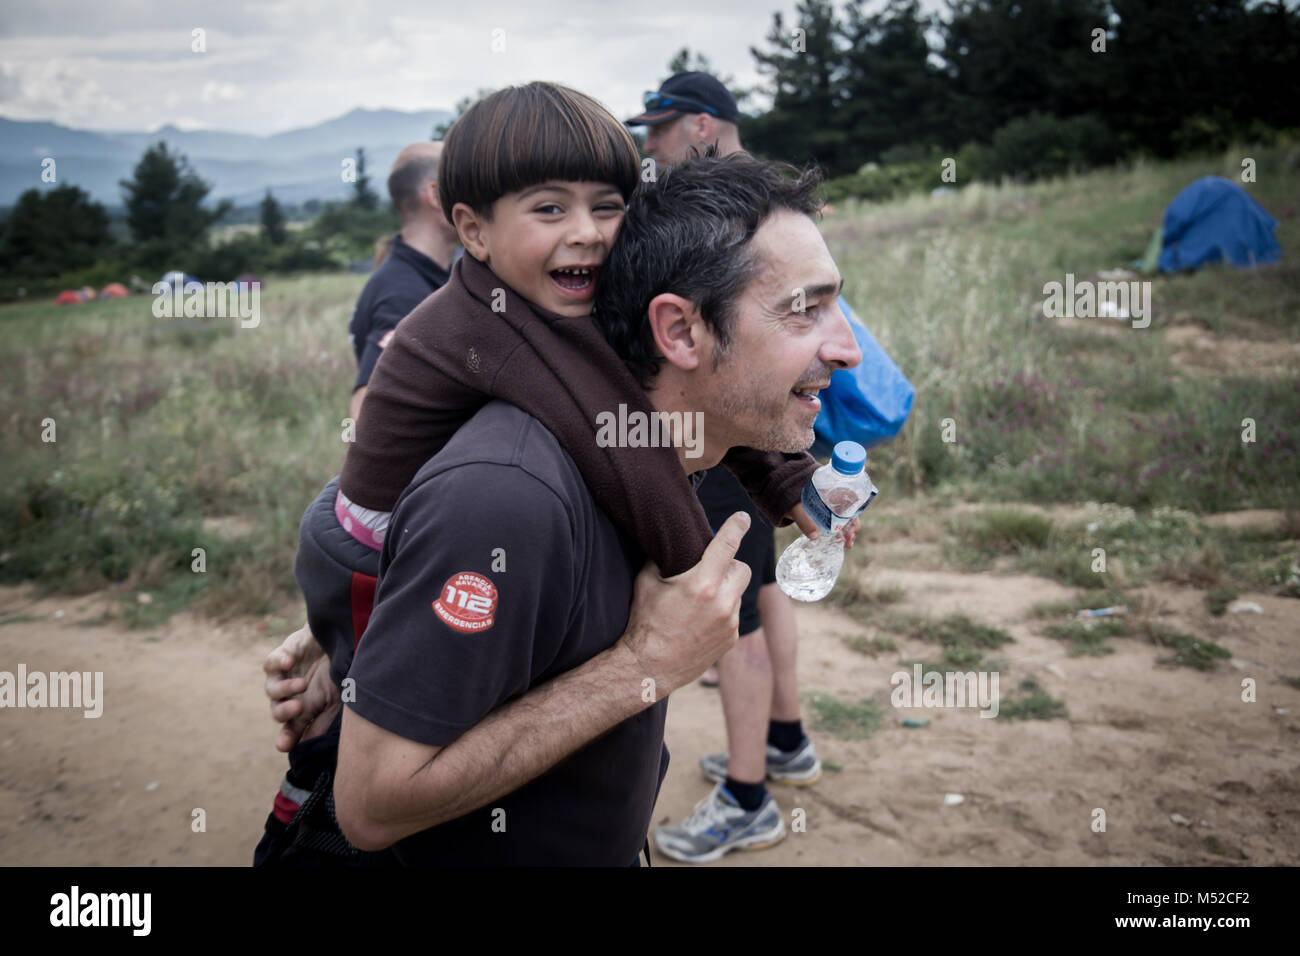 A Spanish volunteer Fireman carrying a Syrian boy at Idomeni refugee Camp in northern Greece. - Stock Image